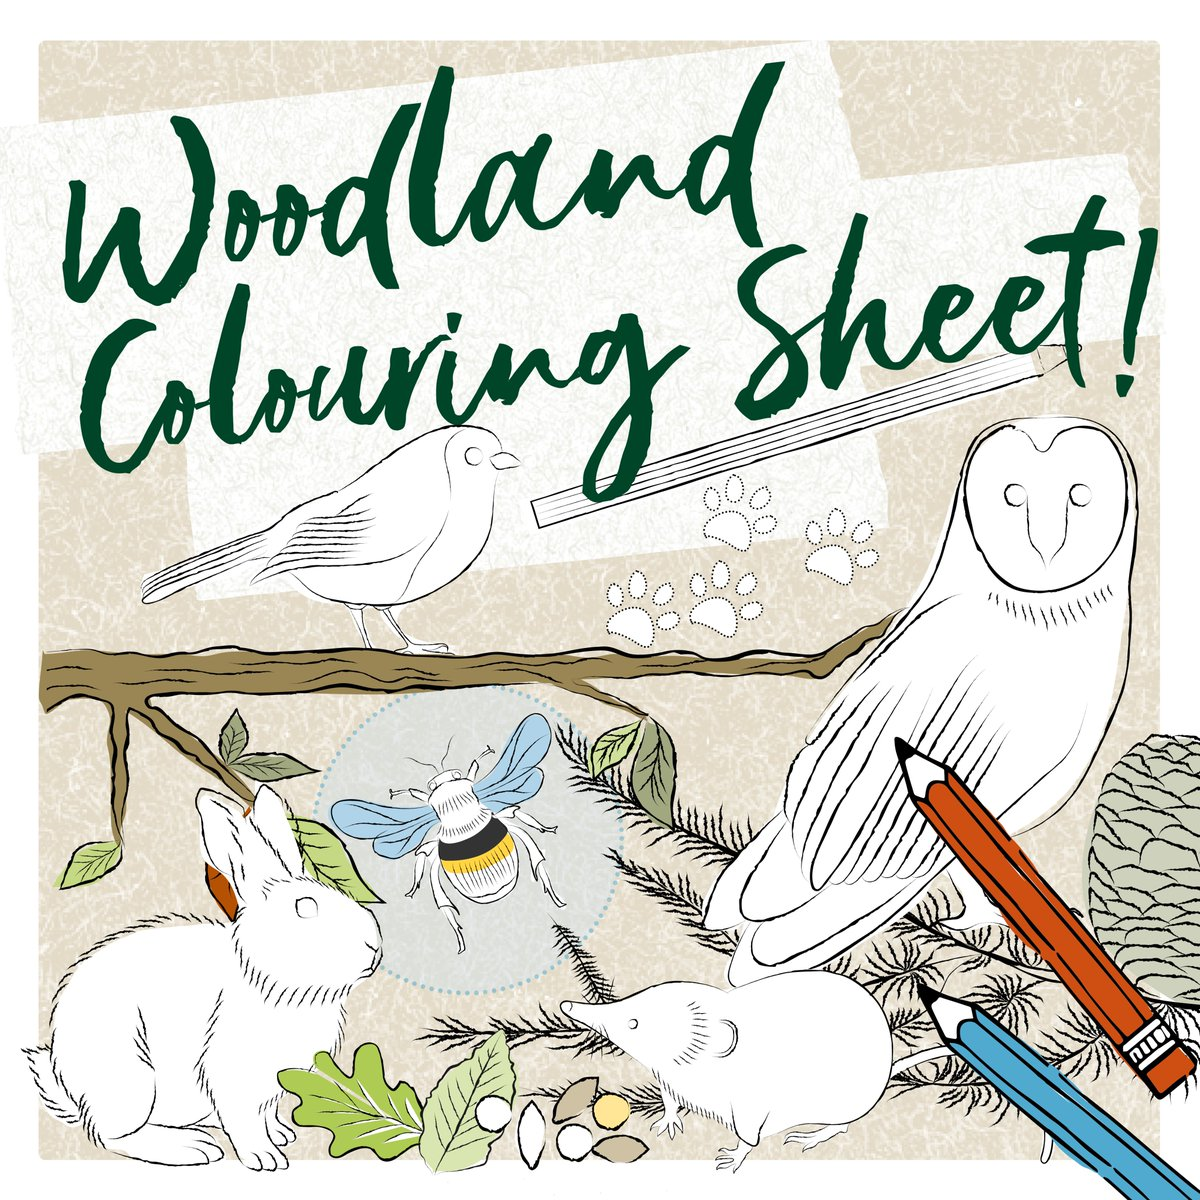 Something for all the family this Bank Holiday Weekend!   Click the link below to download our new Woodland Walk Colouring Sheet.  ➡️ https://t.co/j1ZvWgyvGX  #BankHolidayWeekend https://t.co/evSlVXz7nR